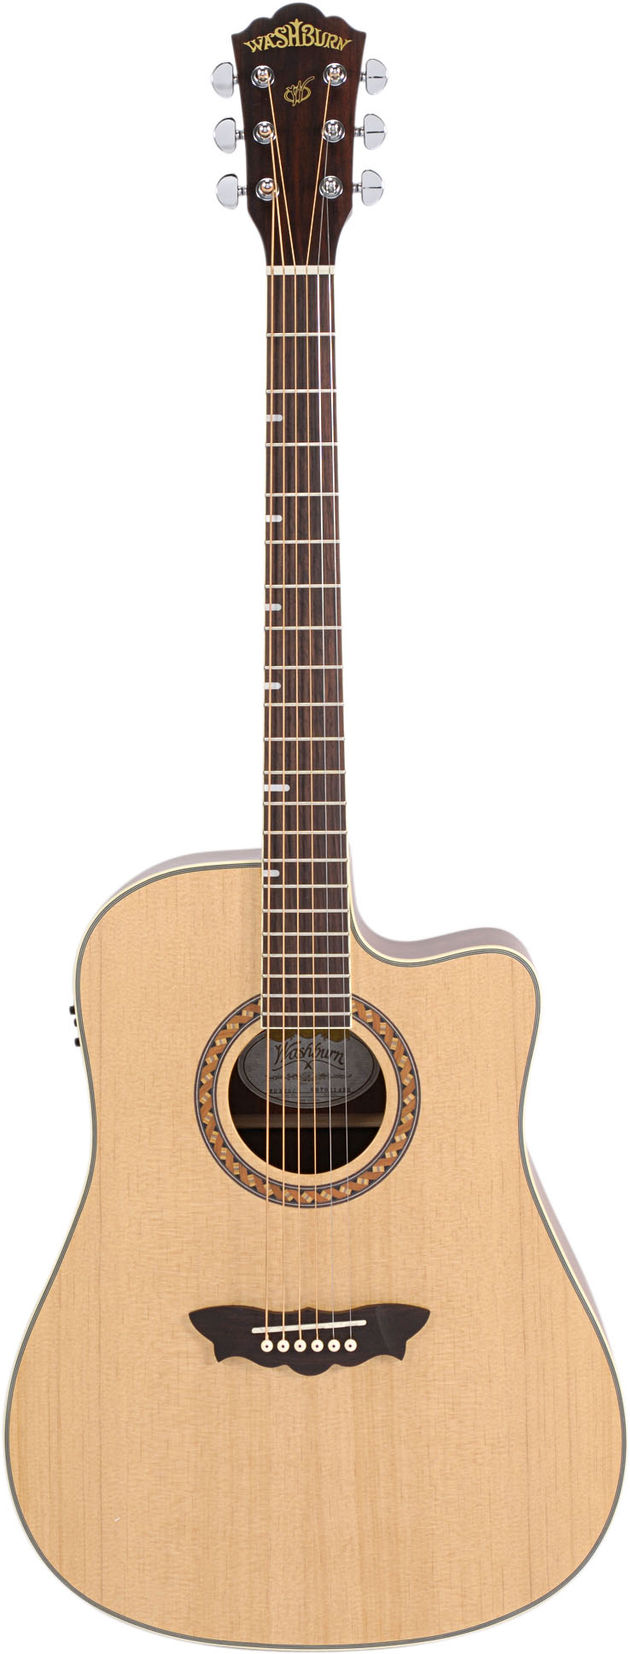 The WD32SCE has a solid spruce top with a satin finish.